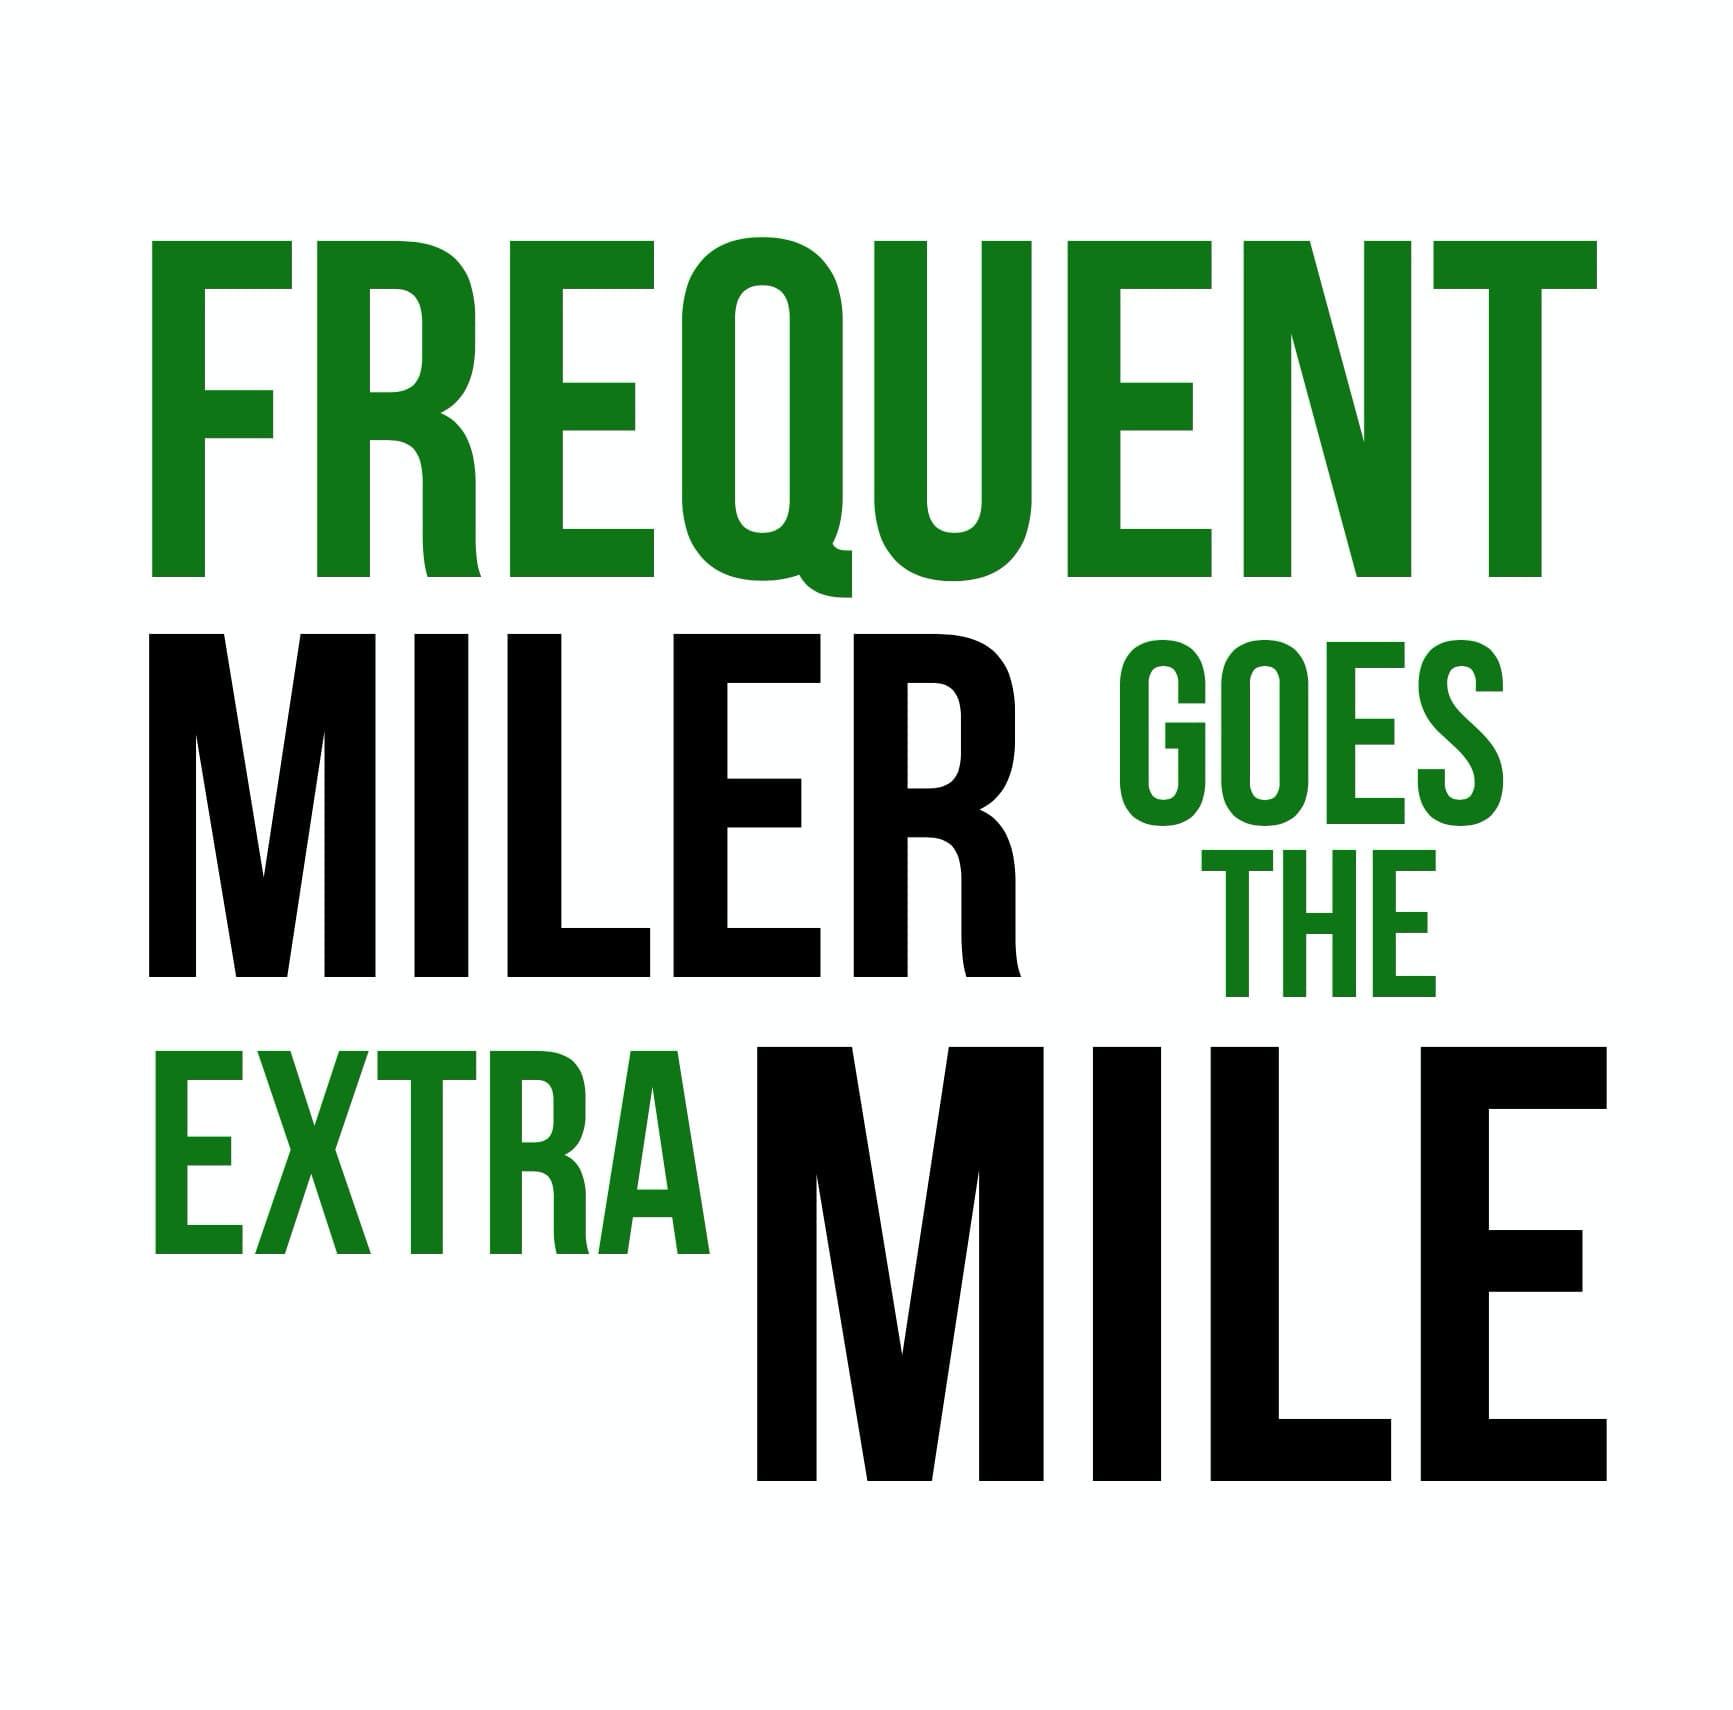 Frequent Miler Goes the Extra Mile